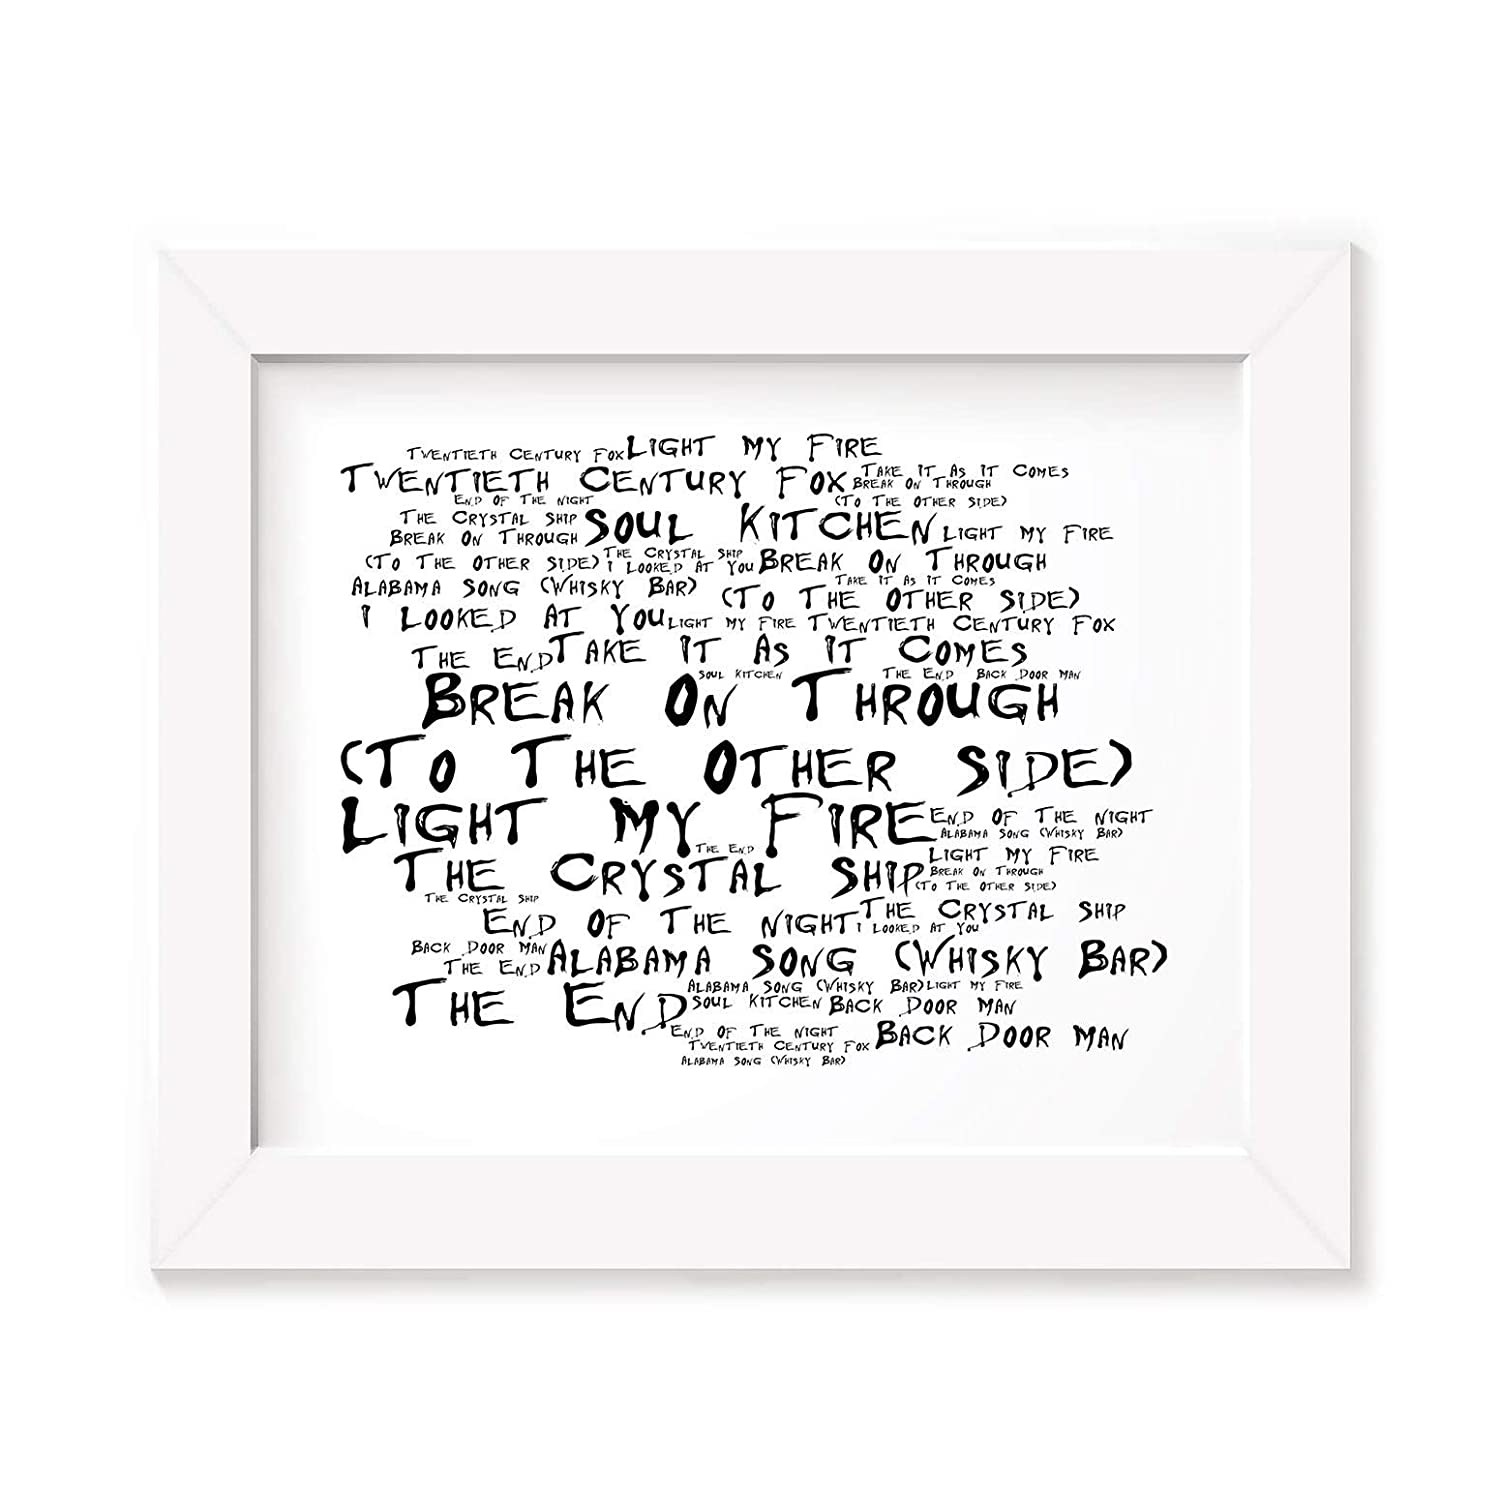 The Other Side Of The Door Lyrics